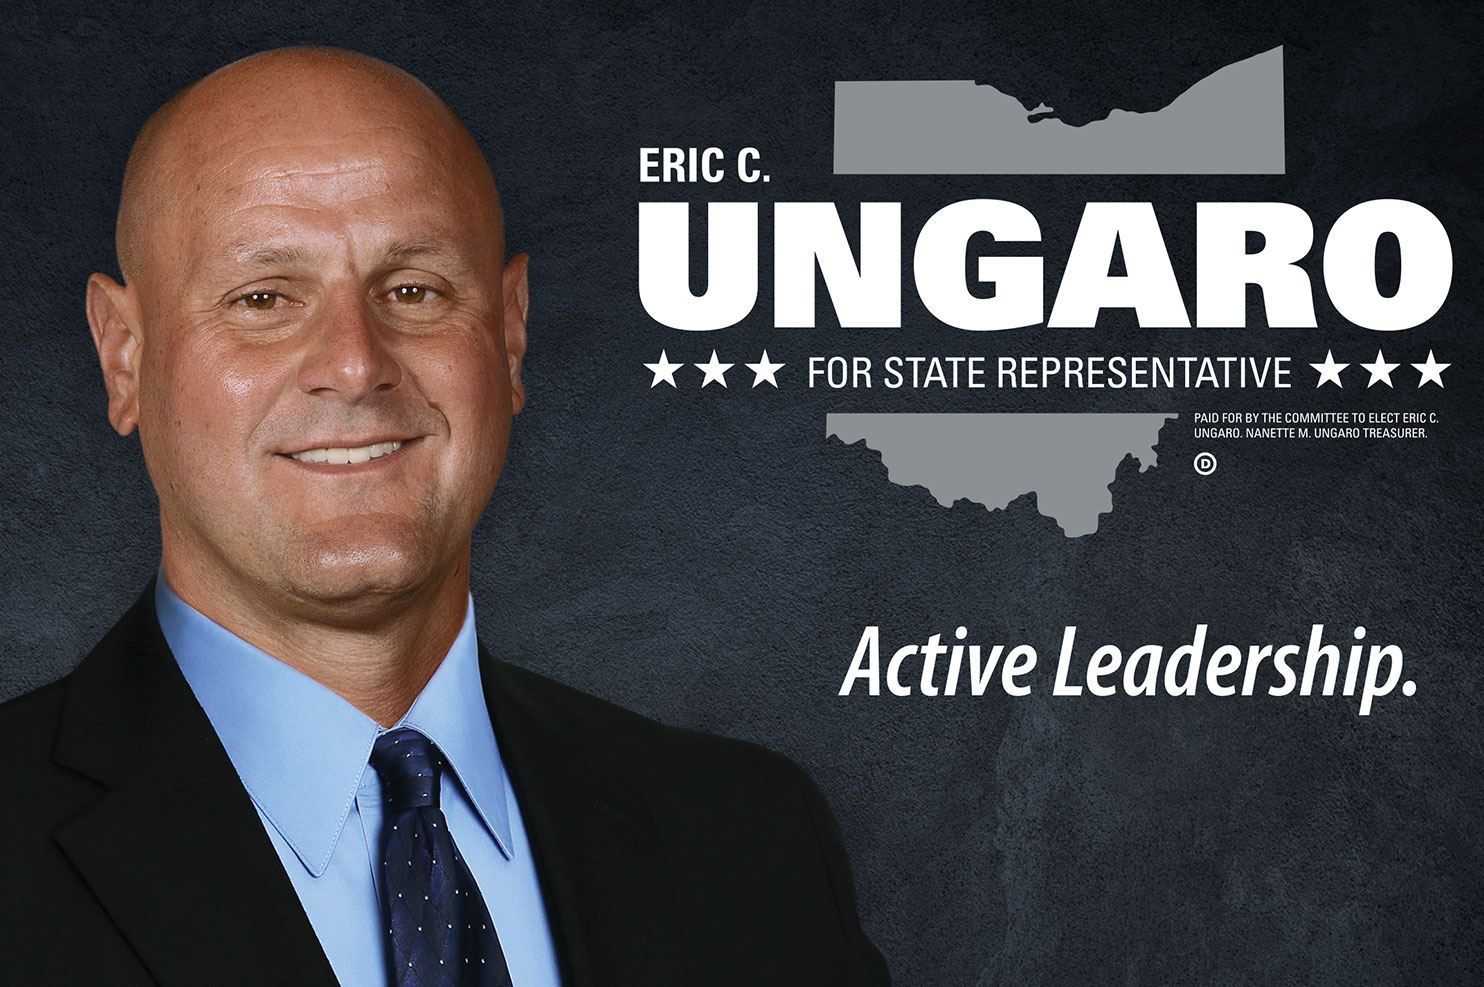 Opioid epidemic, education on agenda of state rep candidate Ungaro